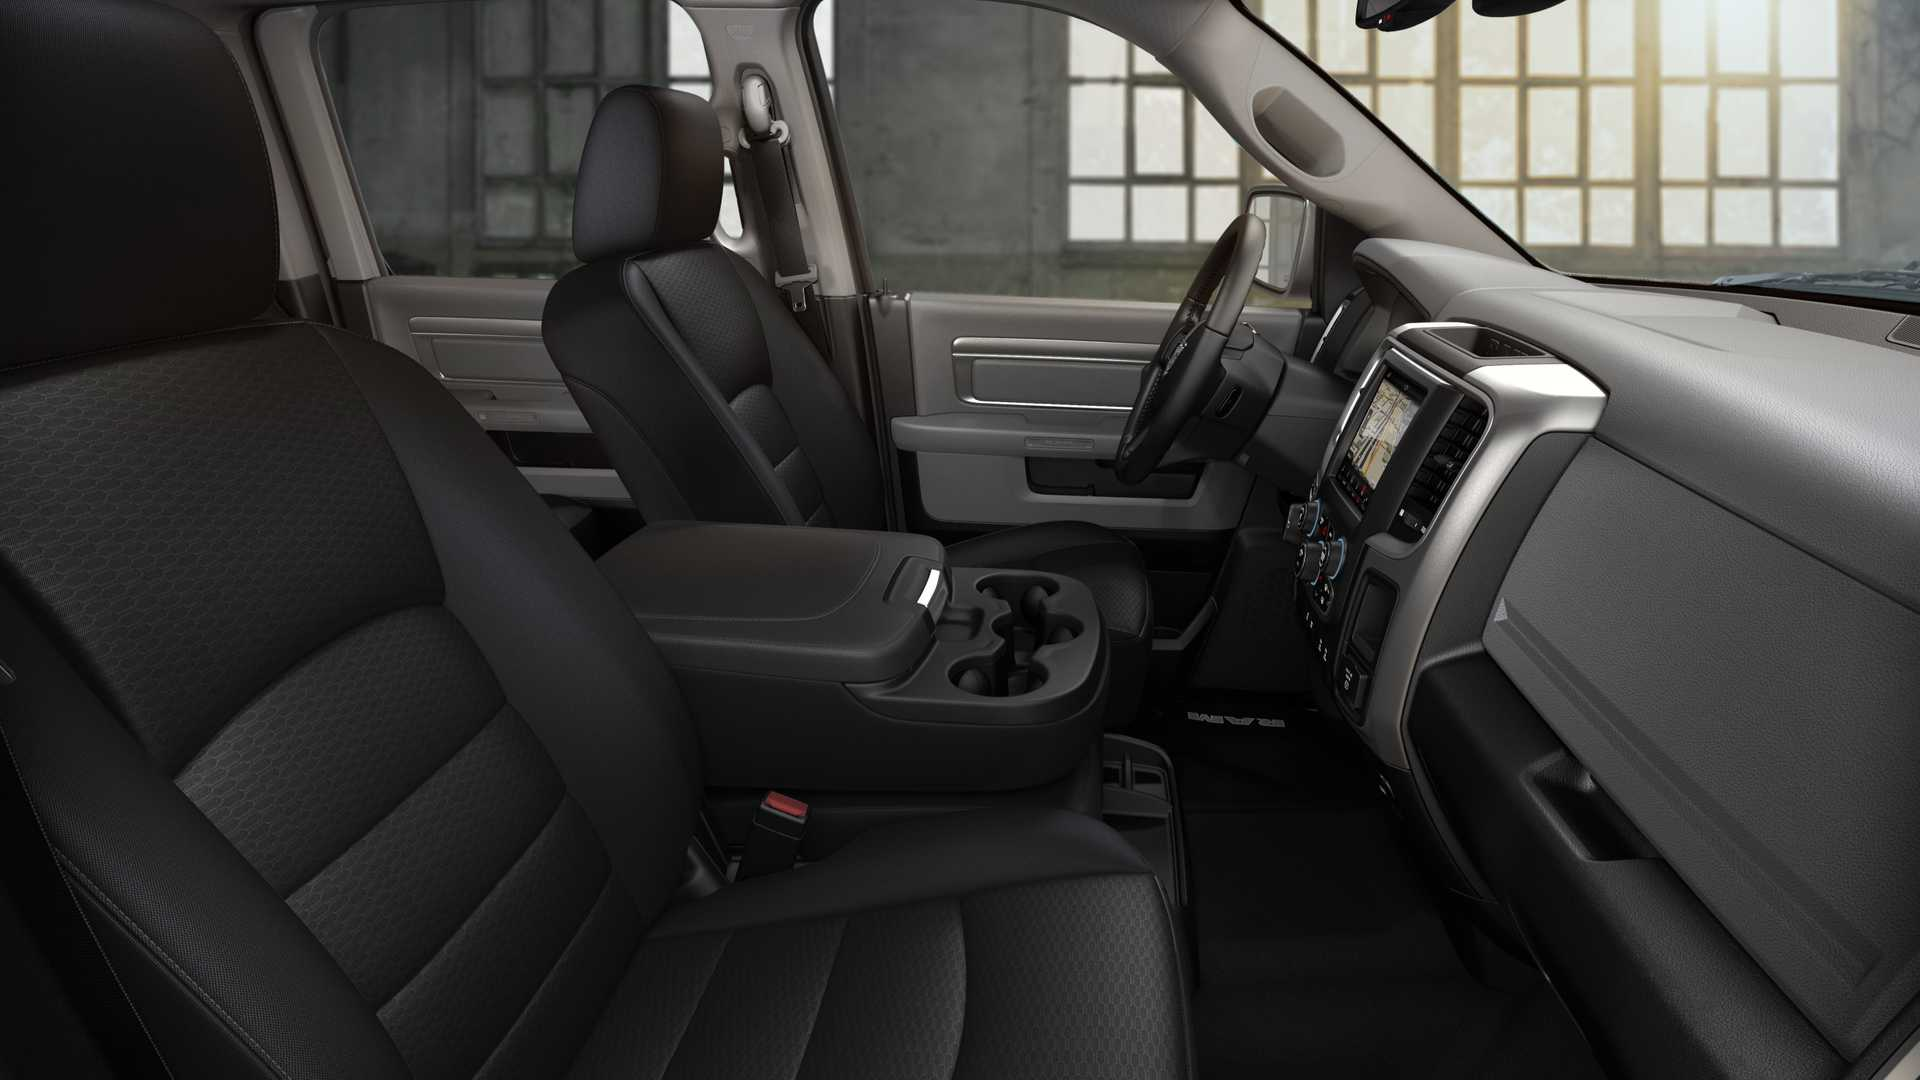 2019 Ram 1500 Classic Warlock Interior Seats Wallpapers (11)